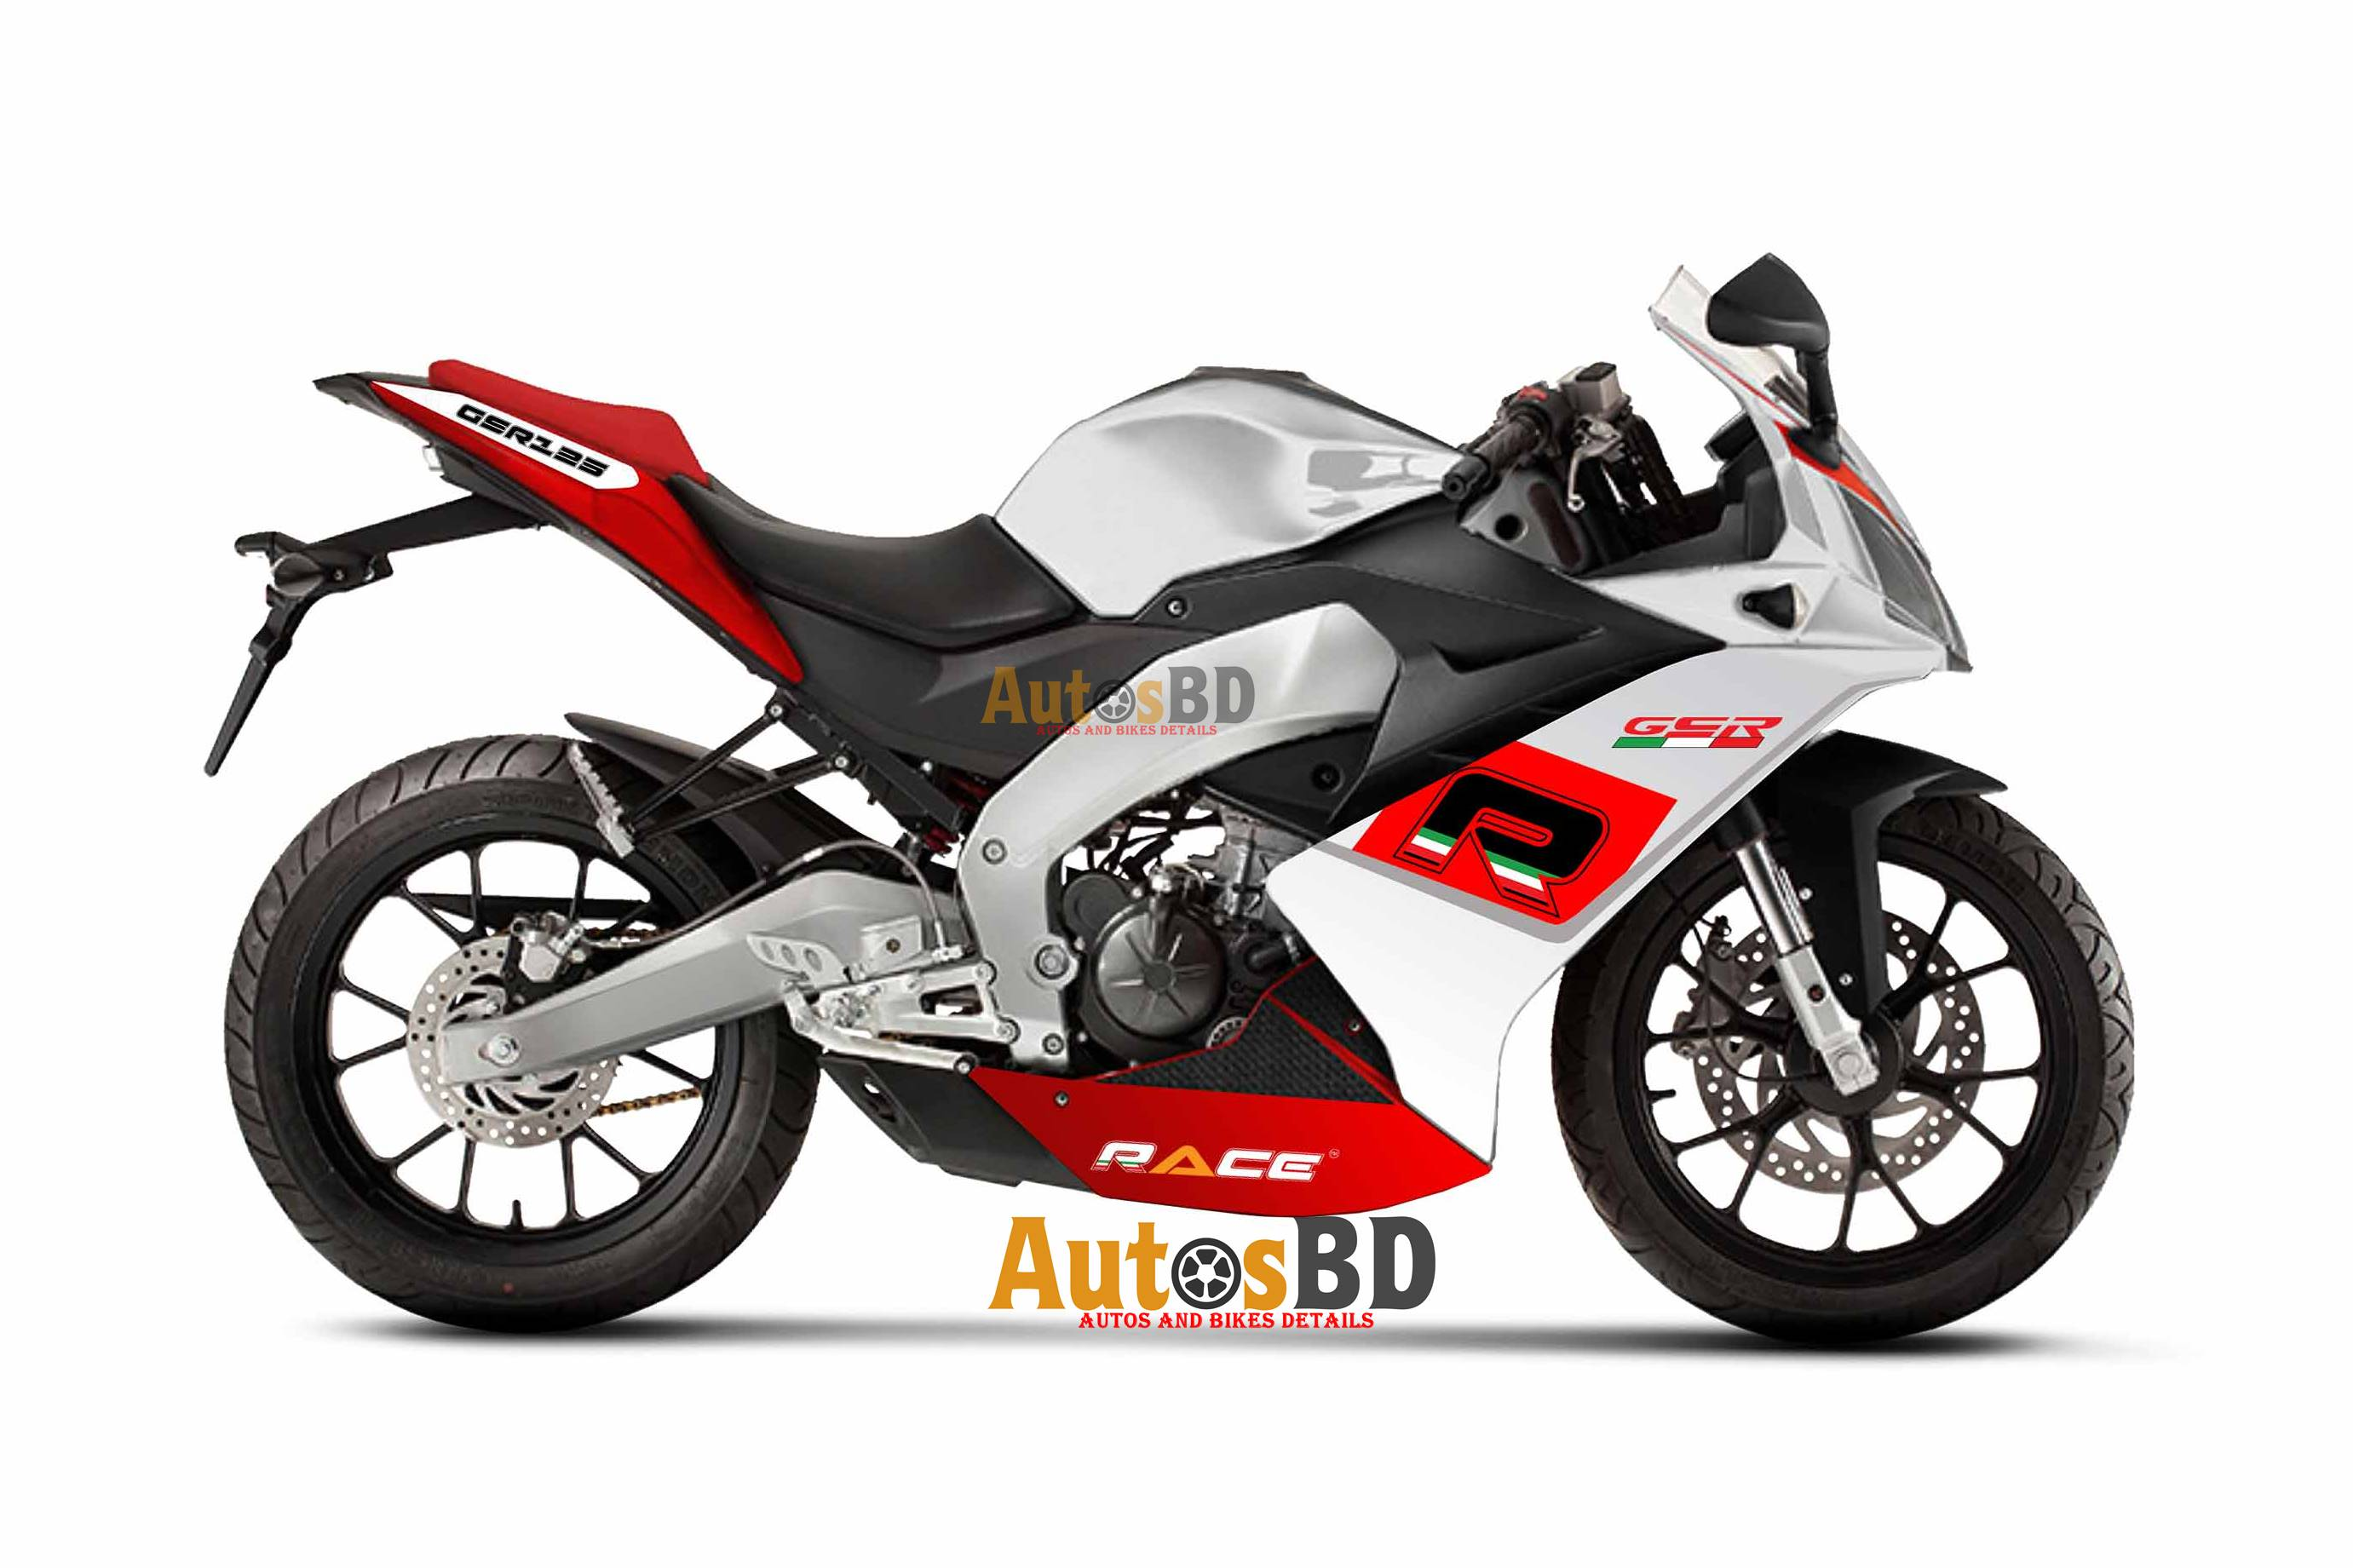 Race GSR125 Motorcycle Specification